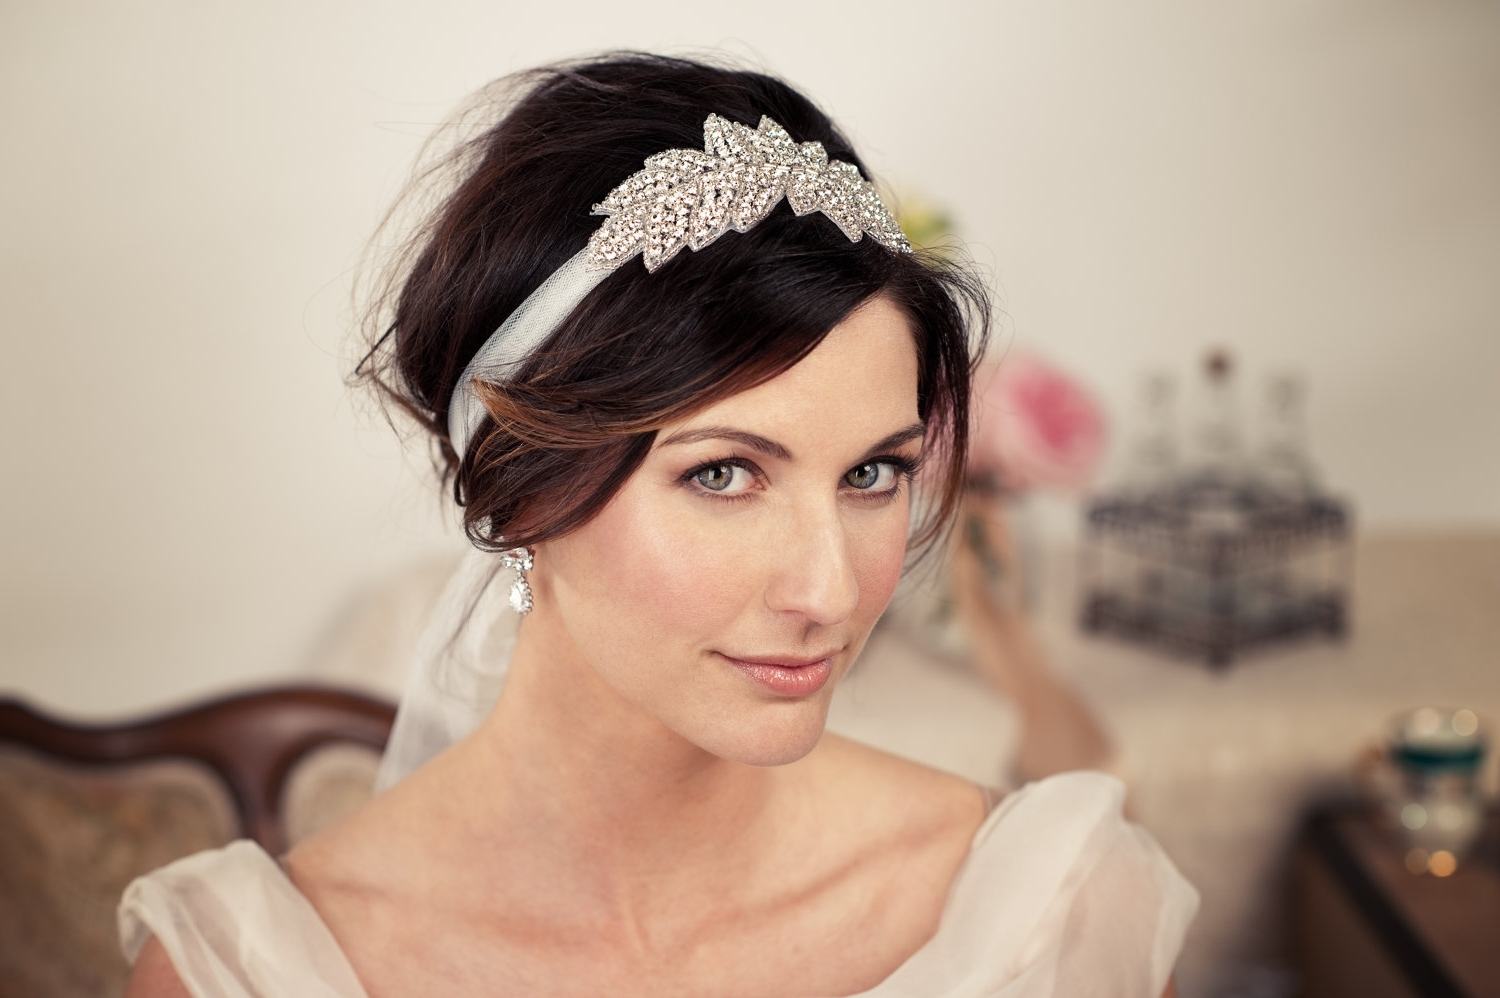 Wedding Hairstyles Bridal Hairstyles With Headbands Inside Most Current Pixie Hairstyles With Headband (View 12 of 15)